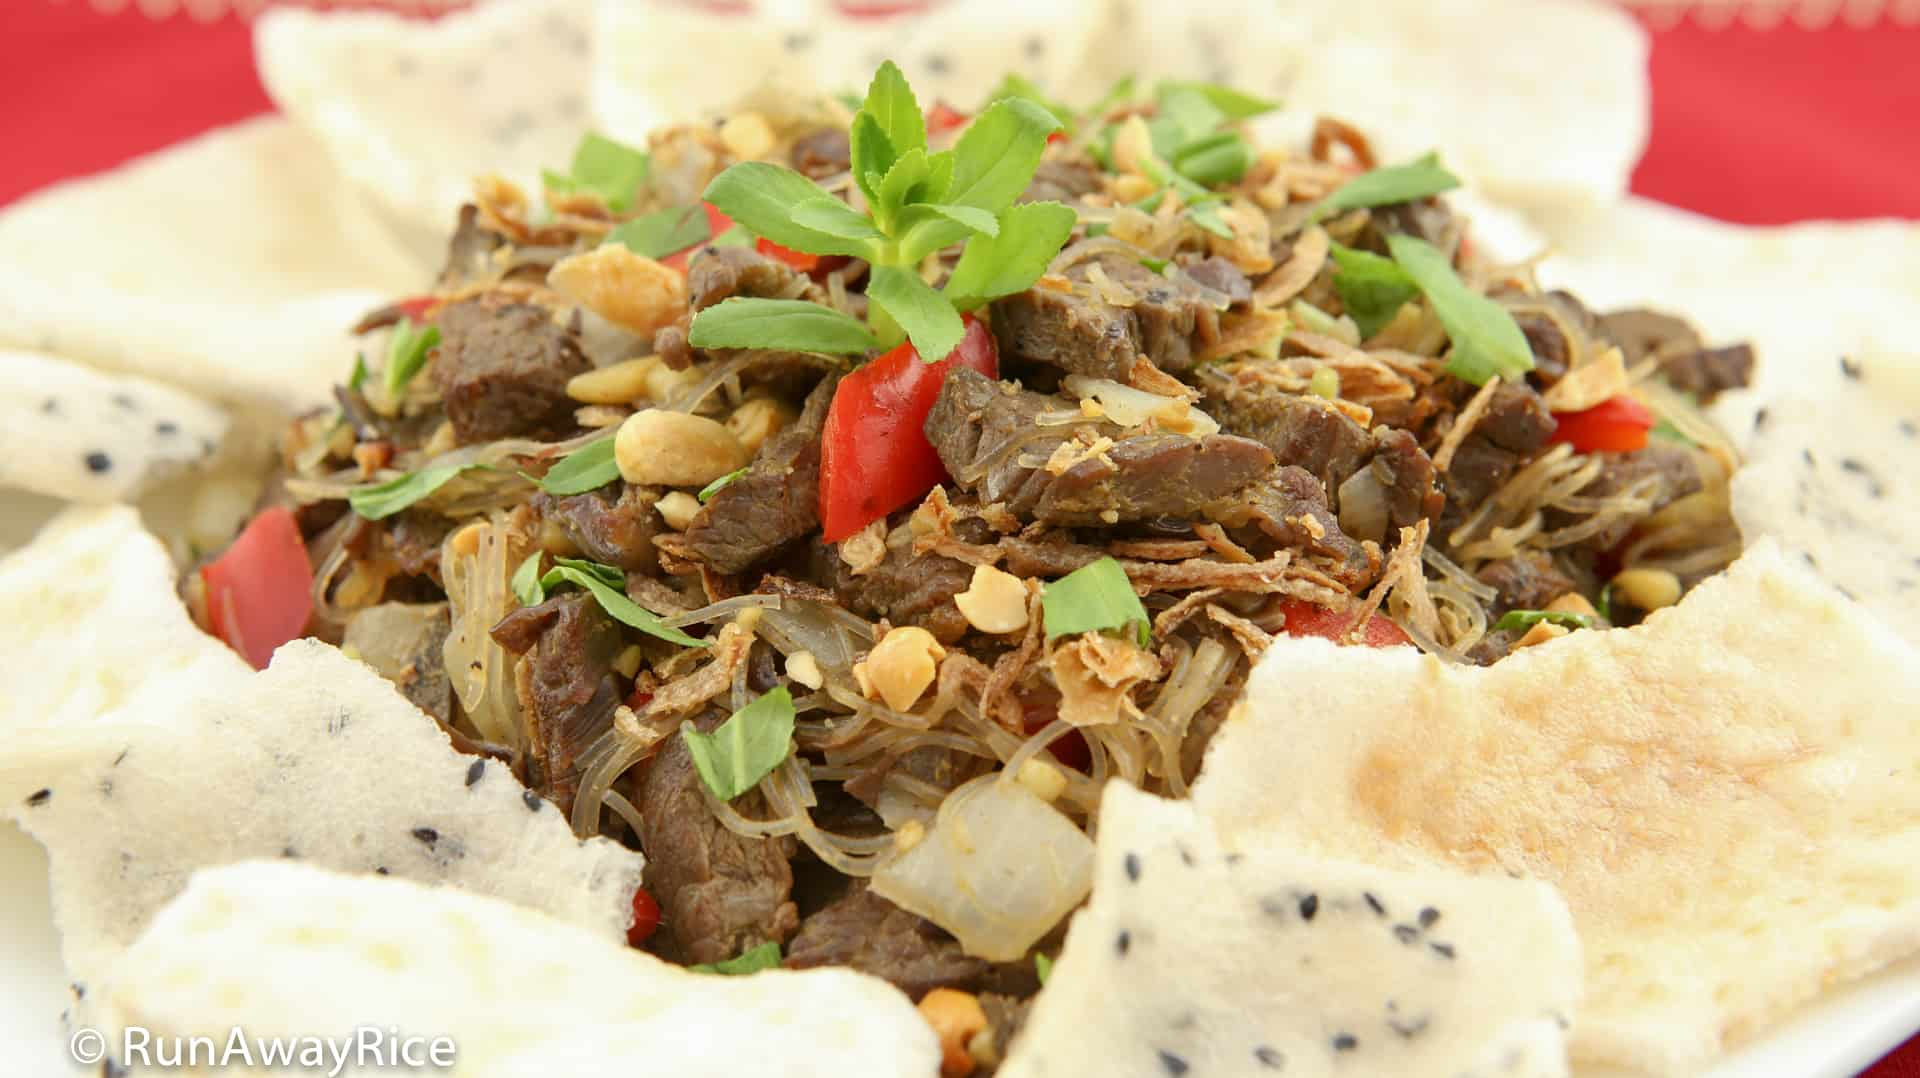 Beef Stir-Fry Appetizer / Bo Xao Lan - Stir-Fried Beef, Red Peppers, Bean Thread Noodle and Asian Spices served with Sesame Rice Crackers | recipe from runawayrice.com